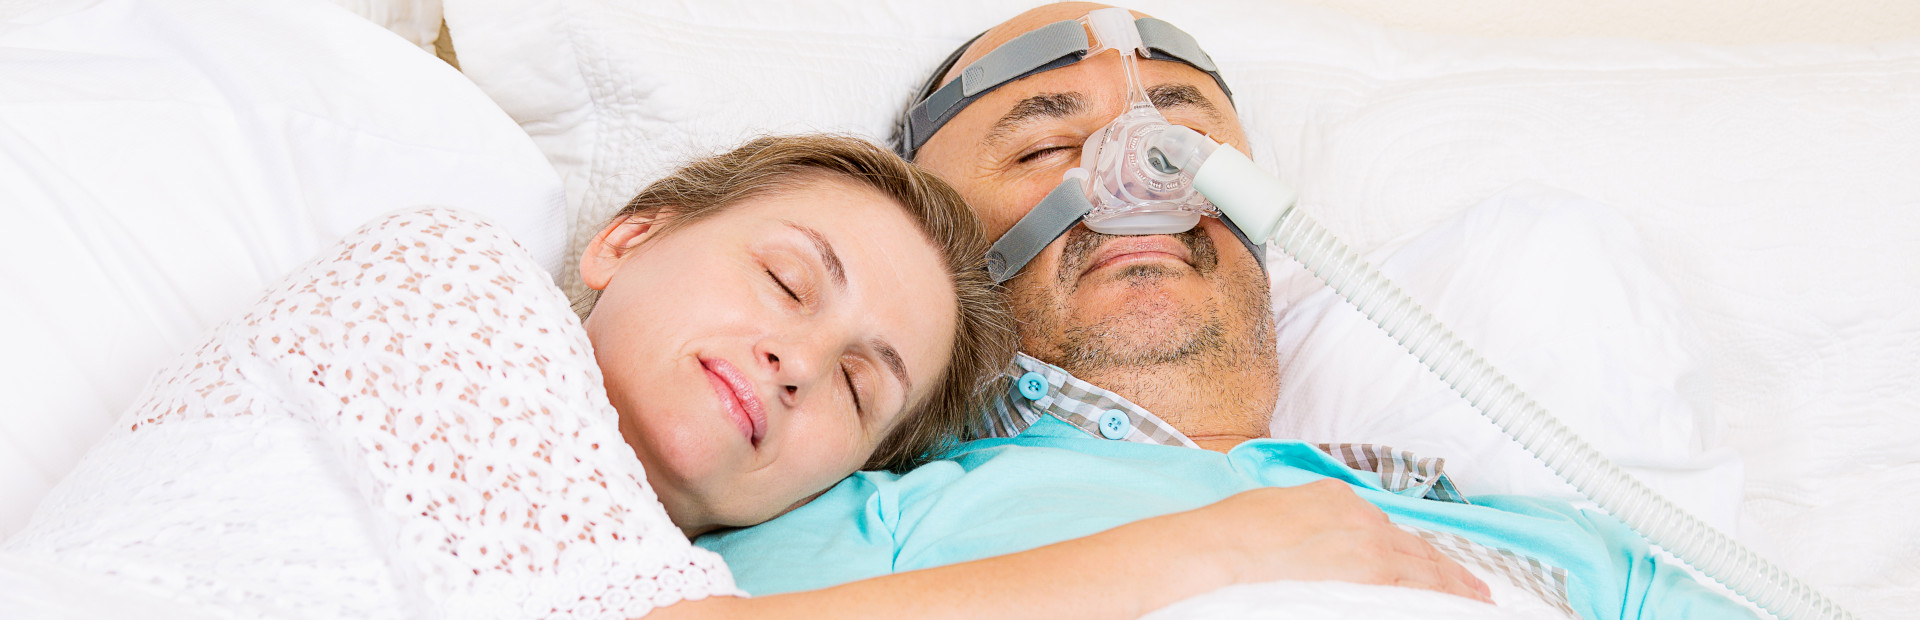 Airway therapy